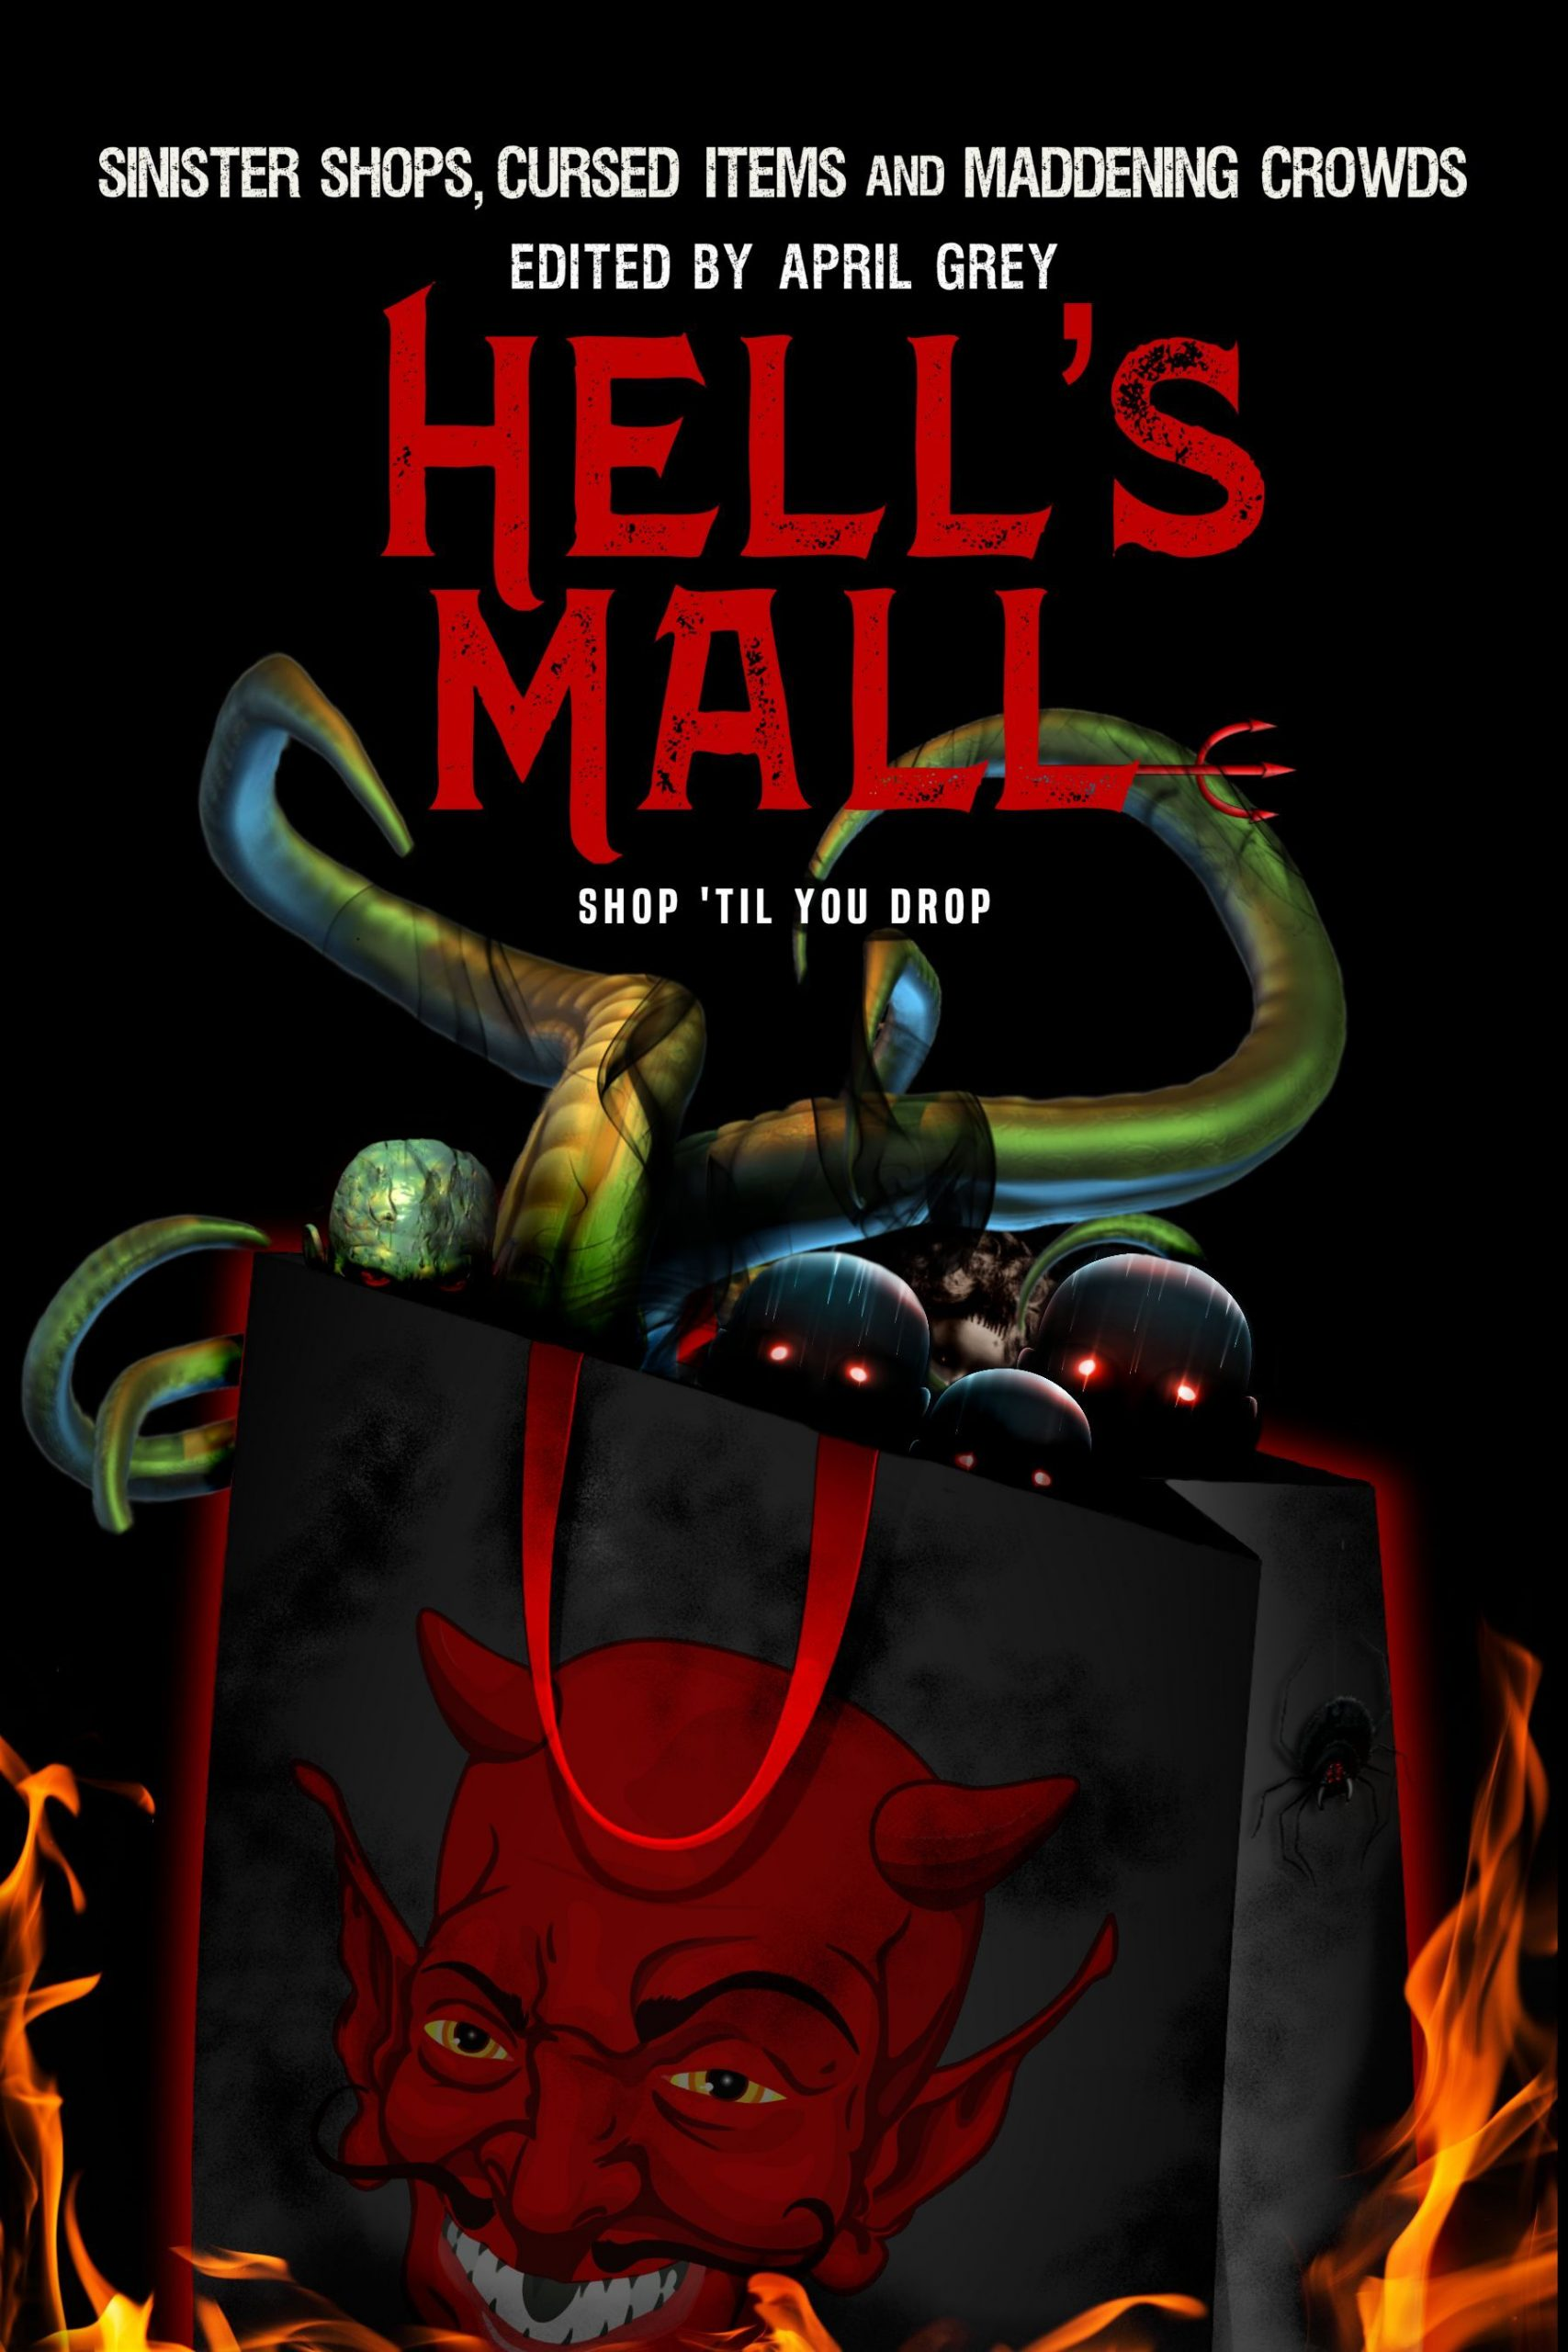 Hell's Mall